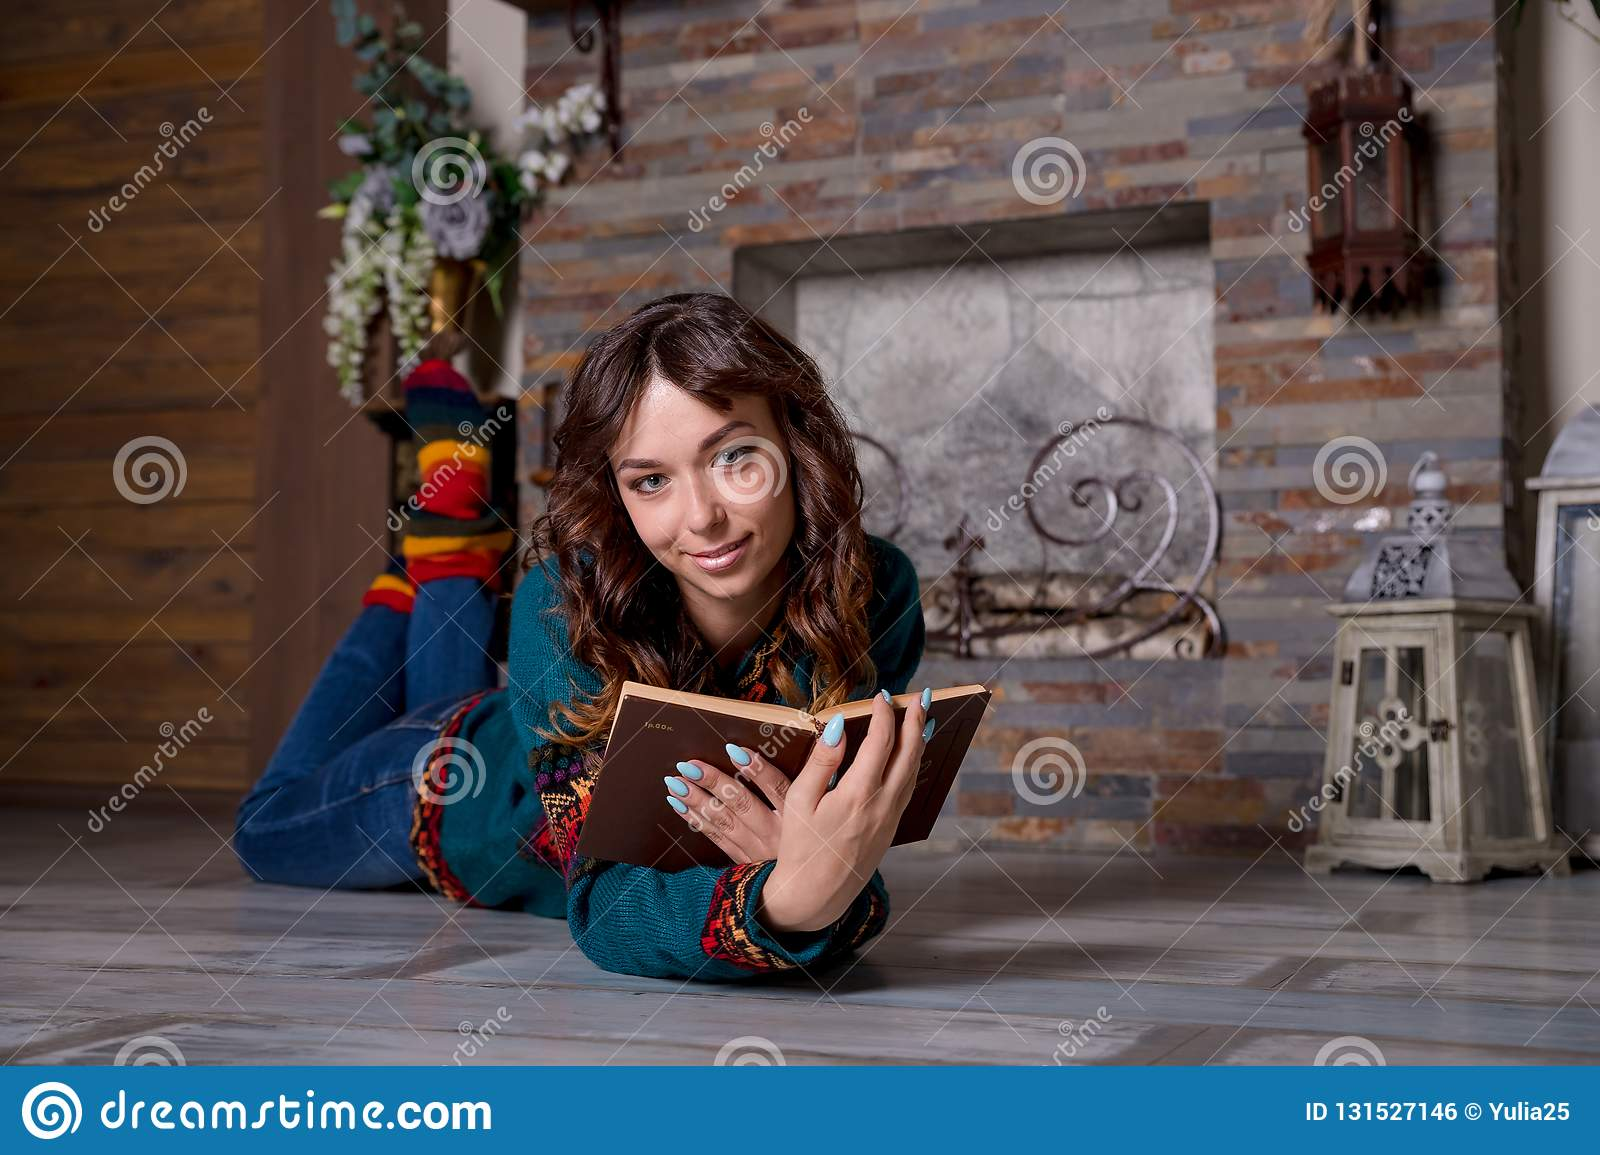 Woman Reading A Book And Enjoying A Hot Chocolate By The